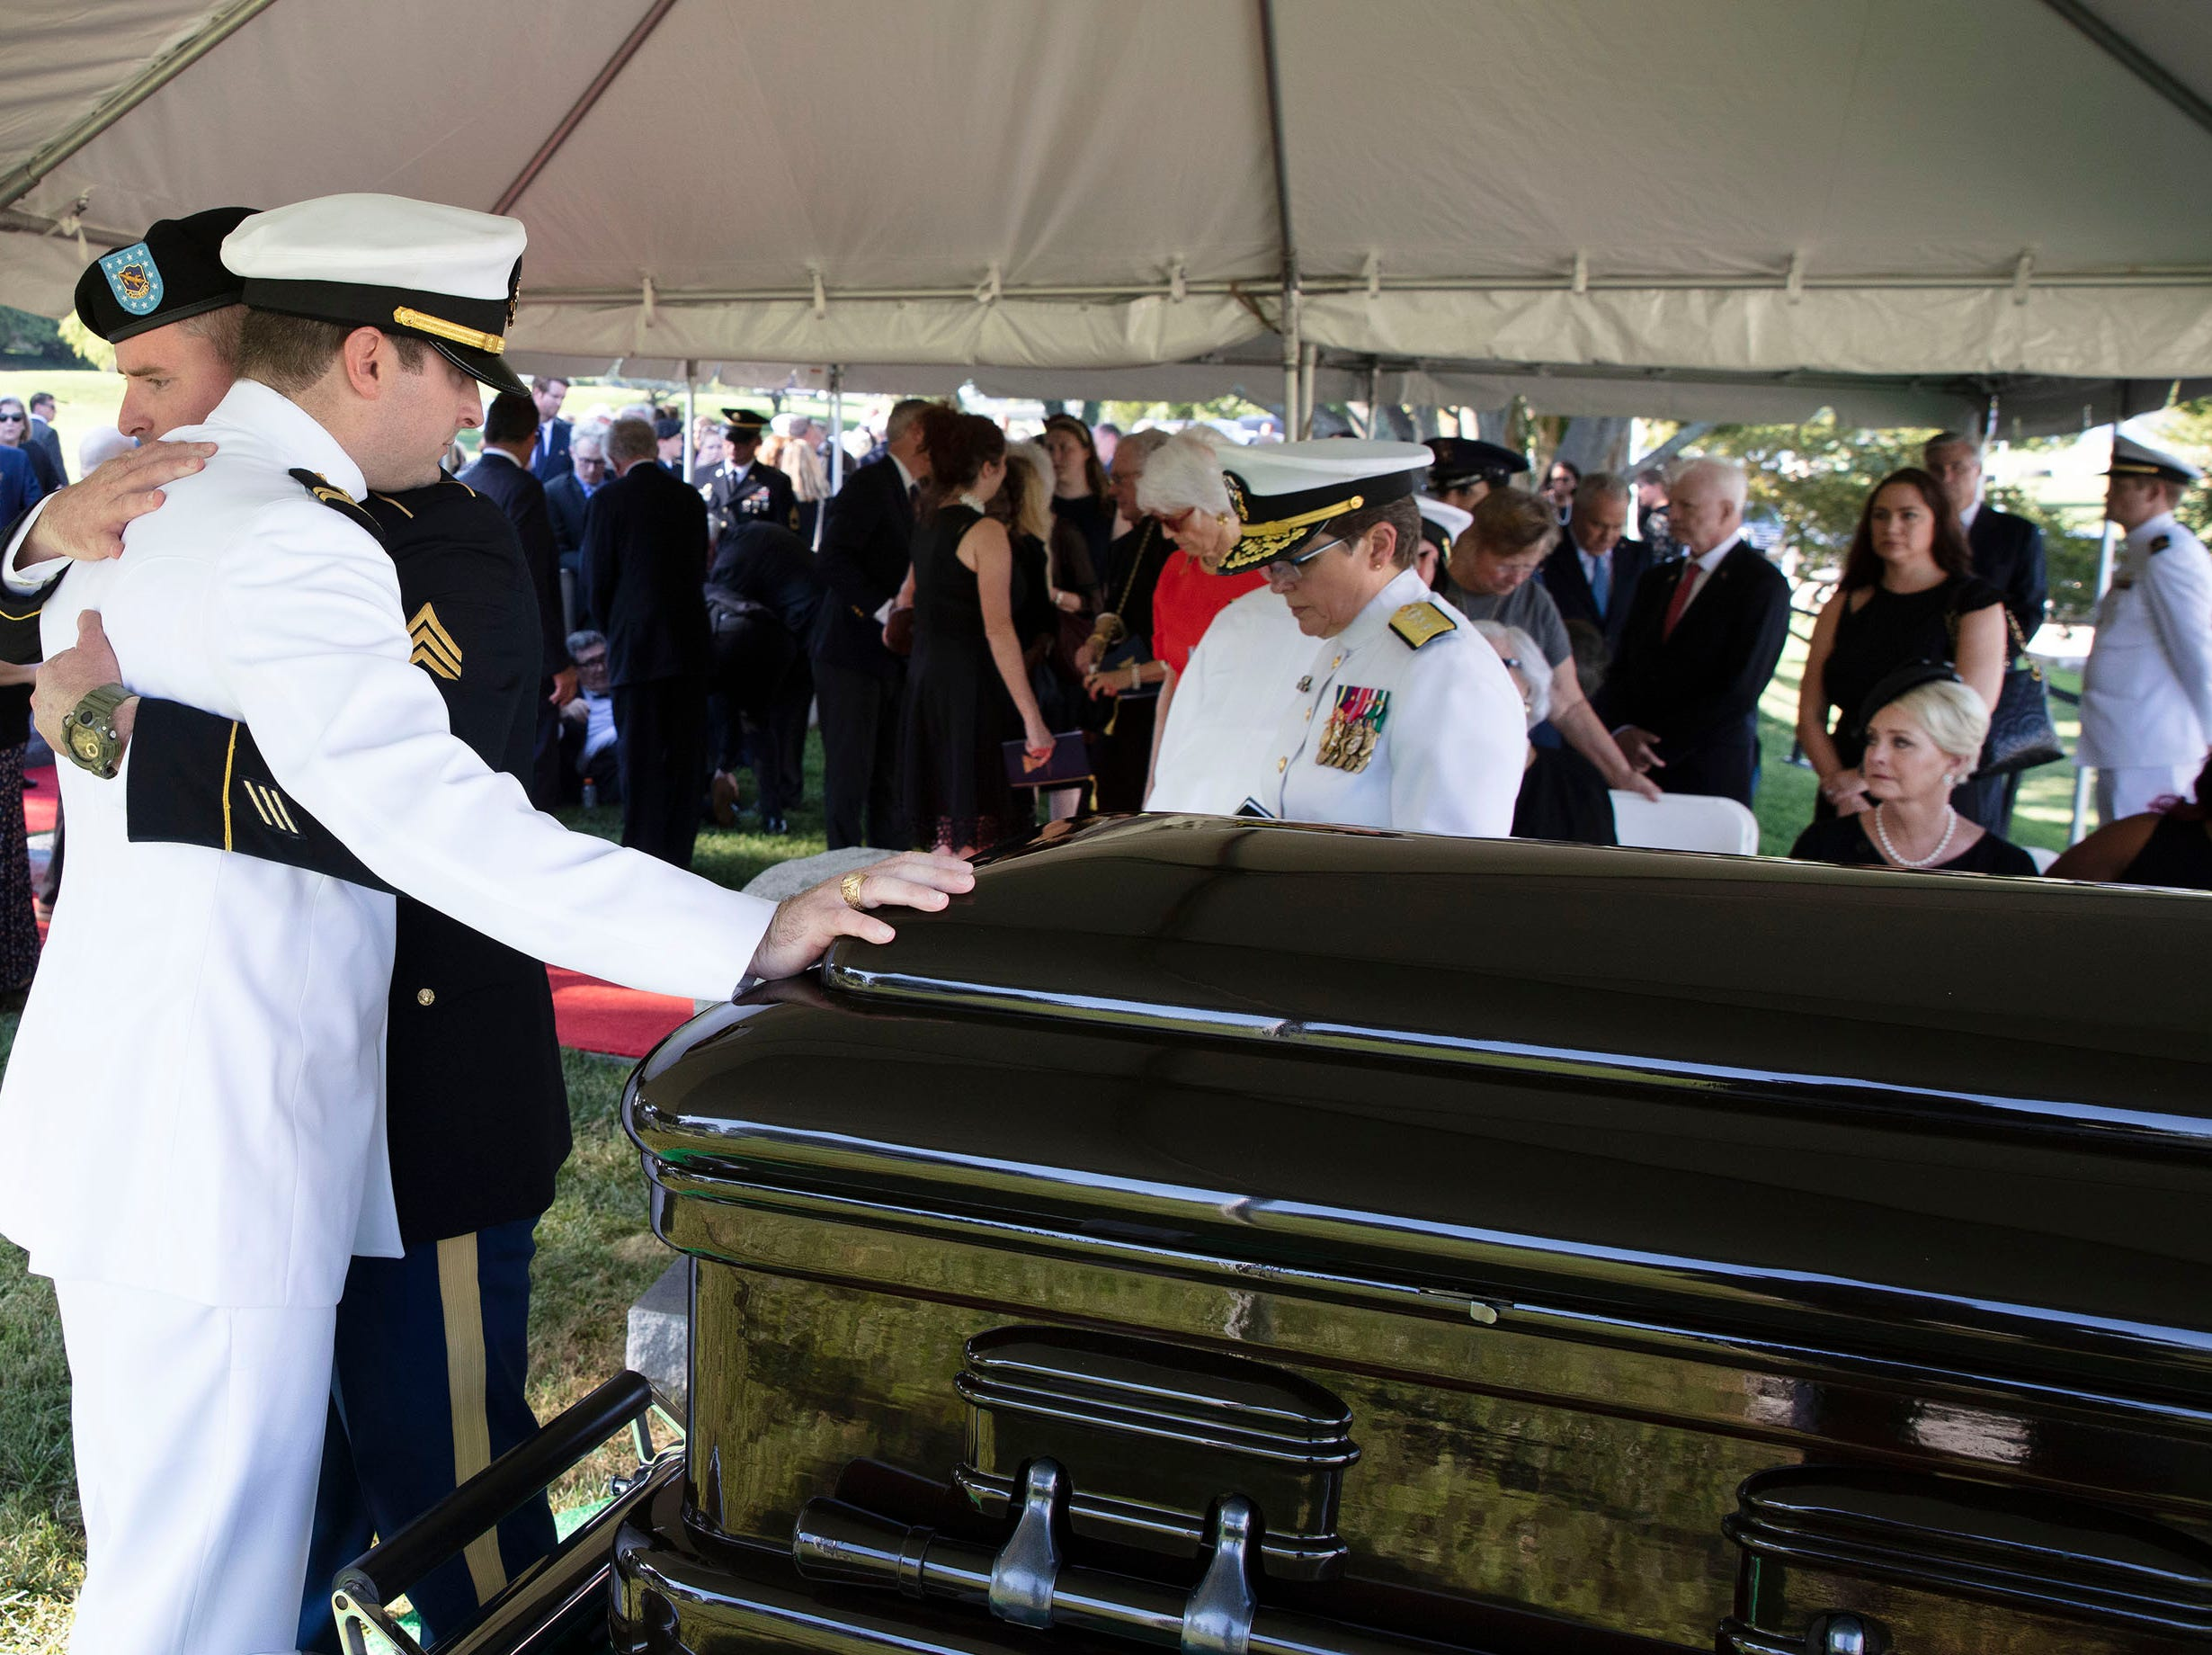 In this photo released by the McCain Family, Jimmy McCain hugs his brother Jack McCain, in white, touching casket, as Cindy McCain, watches during a burial service for Senator John McCain  at the cemetery at the United States Naval Academy on Sept. 2, 2018, in Annapolis, Maryland. A nearly weeklong celebration of the life of US senator John McCain, war hero, maverick, two-time presidential candidate and outspoken critic of Donald Trump, came to a solemn and subdued end on as he was laid to rest at the US Naval Academy in Annapolis, Maryland.